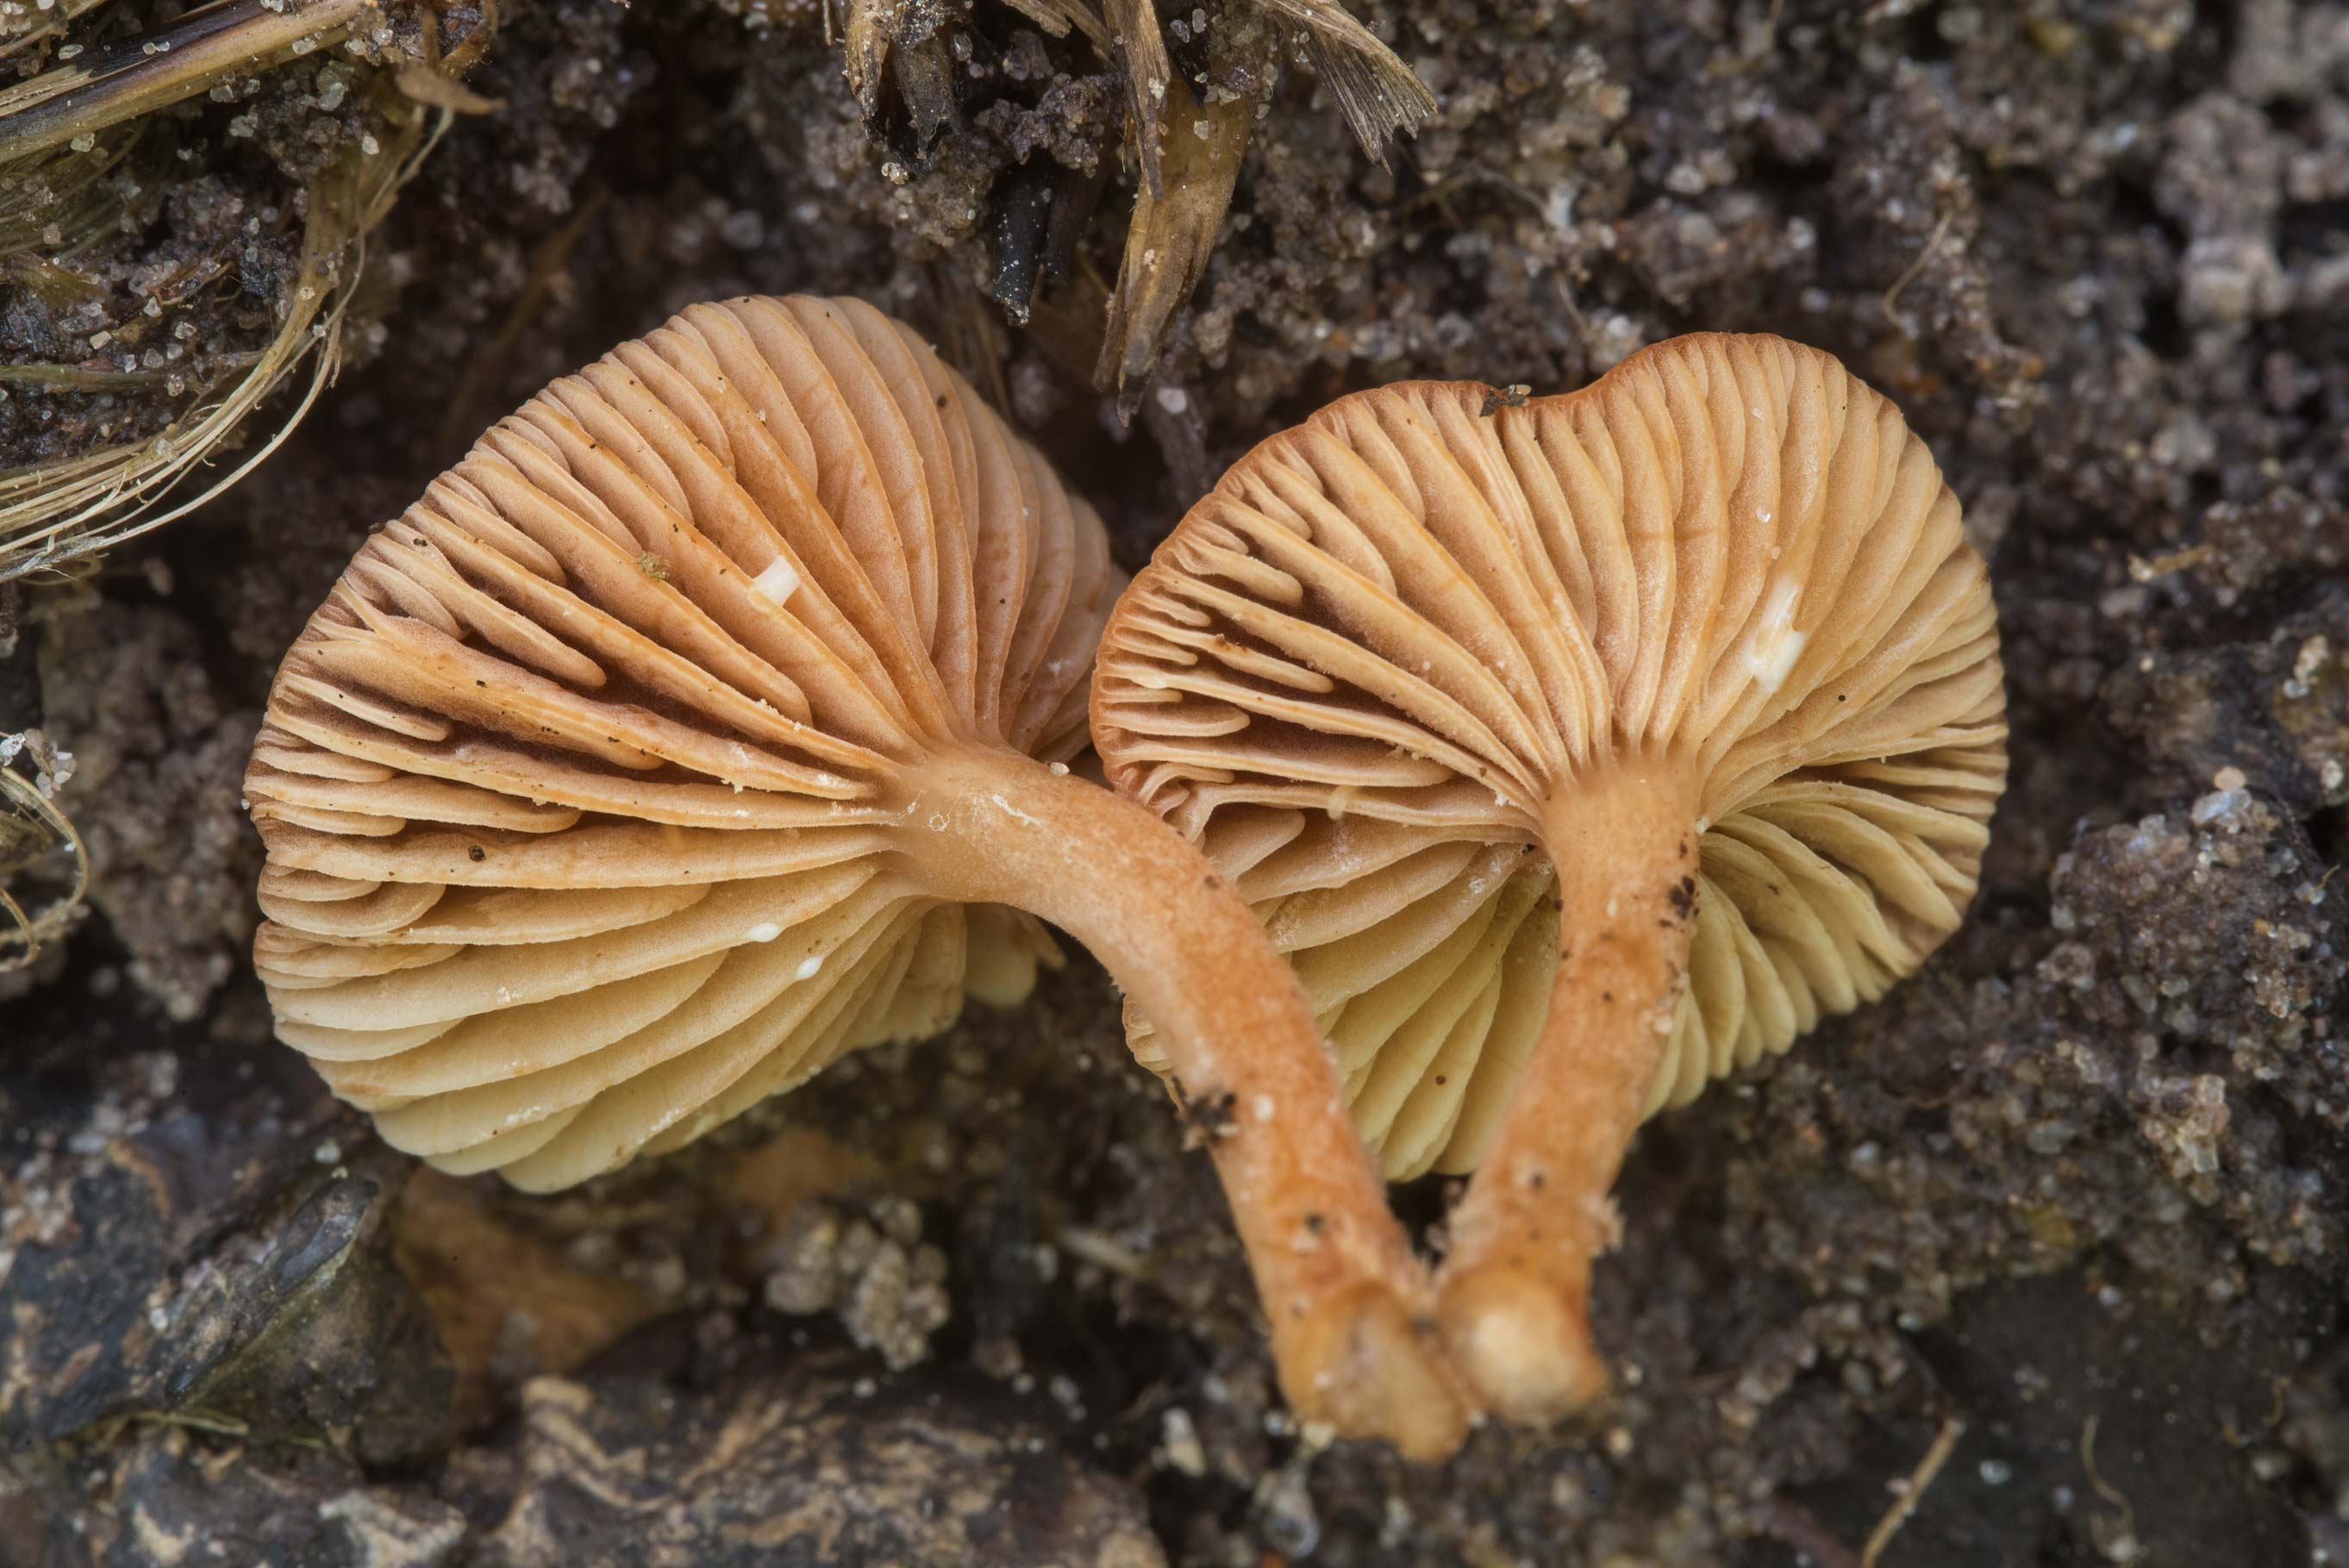 Close up of small milkcap mushrooms Lactarius...National Forest near Huntsville, Texas